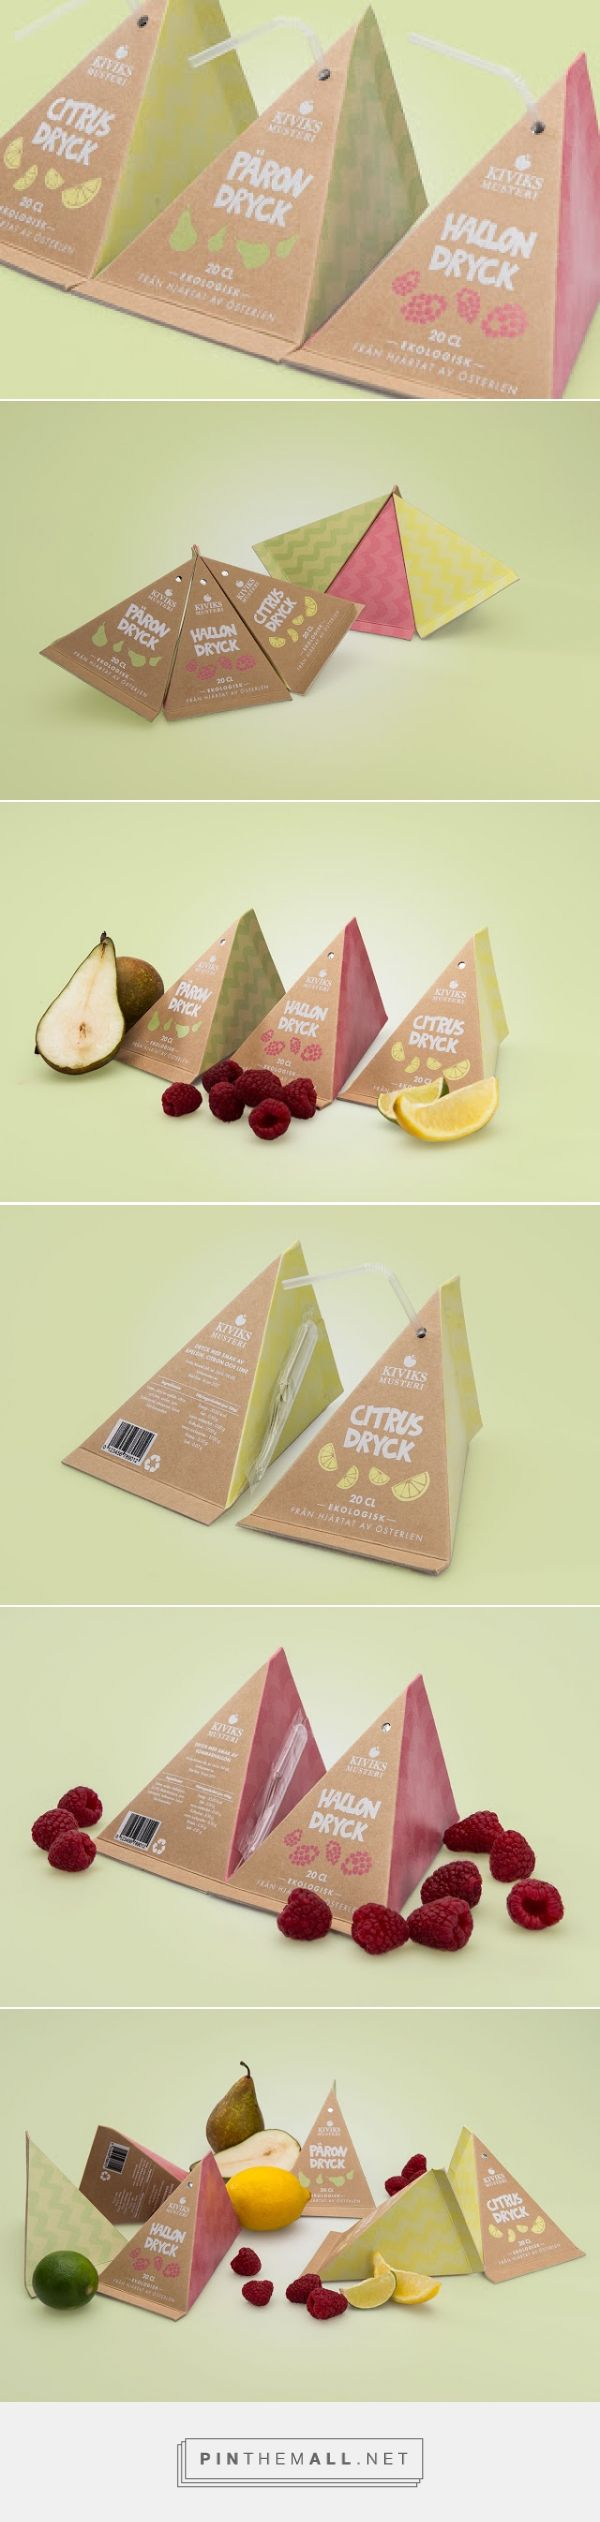 Kiviks Musteri Fruit Drinks (Student Project)         on          Packaging of the World - Creative Package Design Gallery - created via https://pinthemall.net